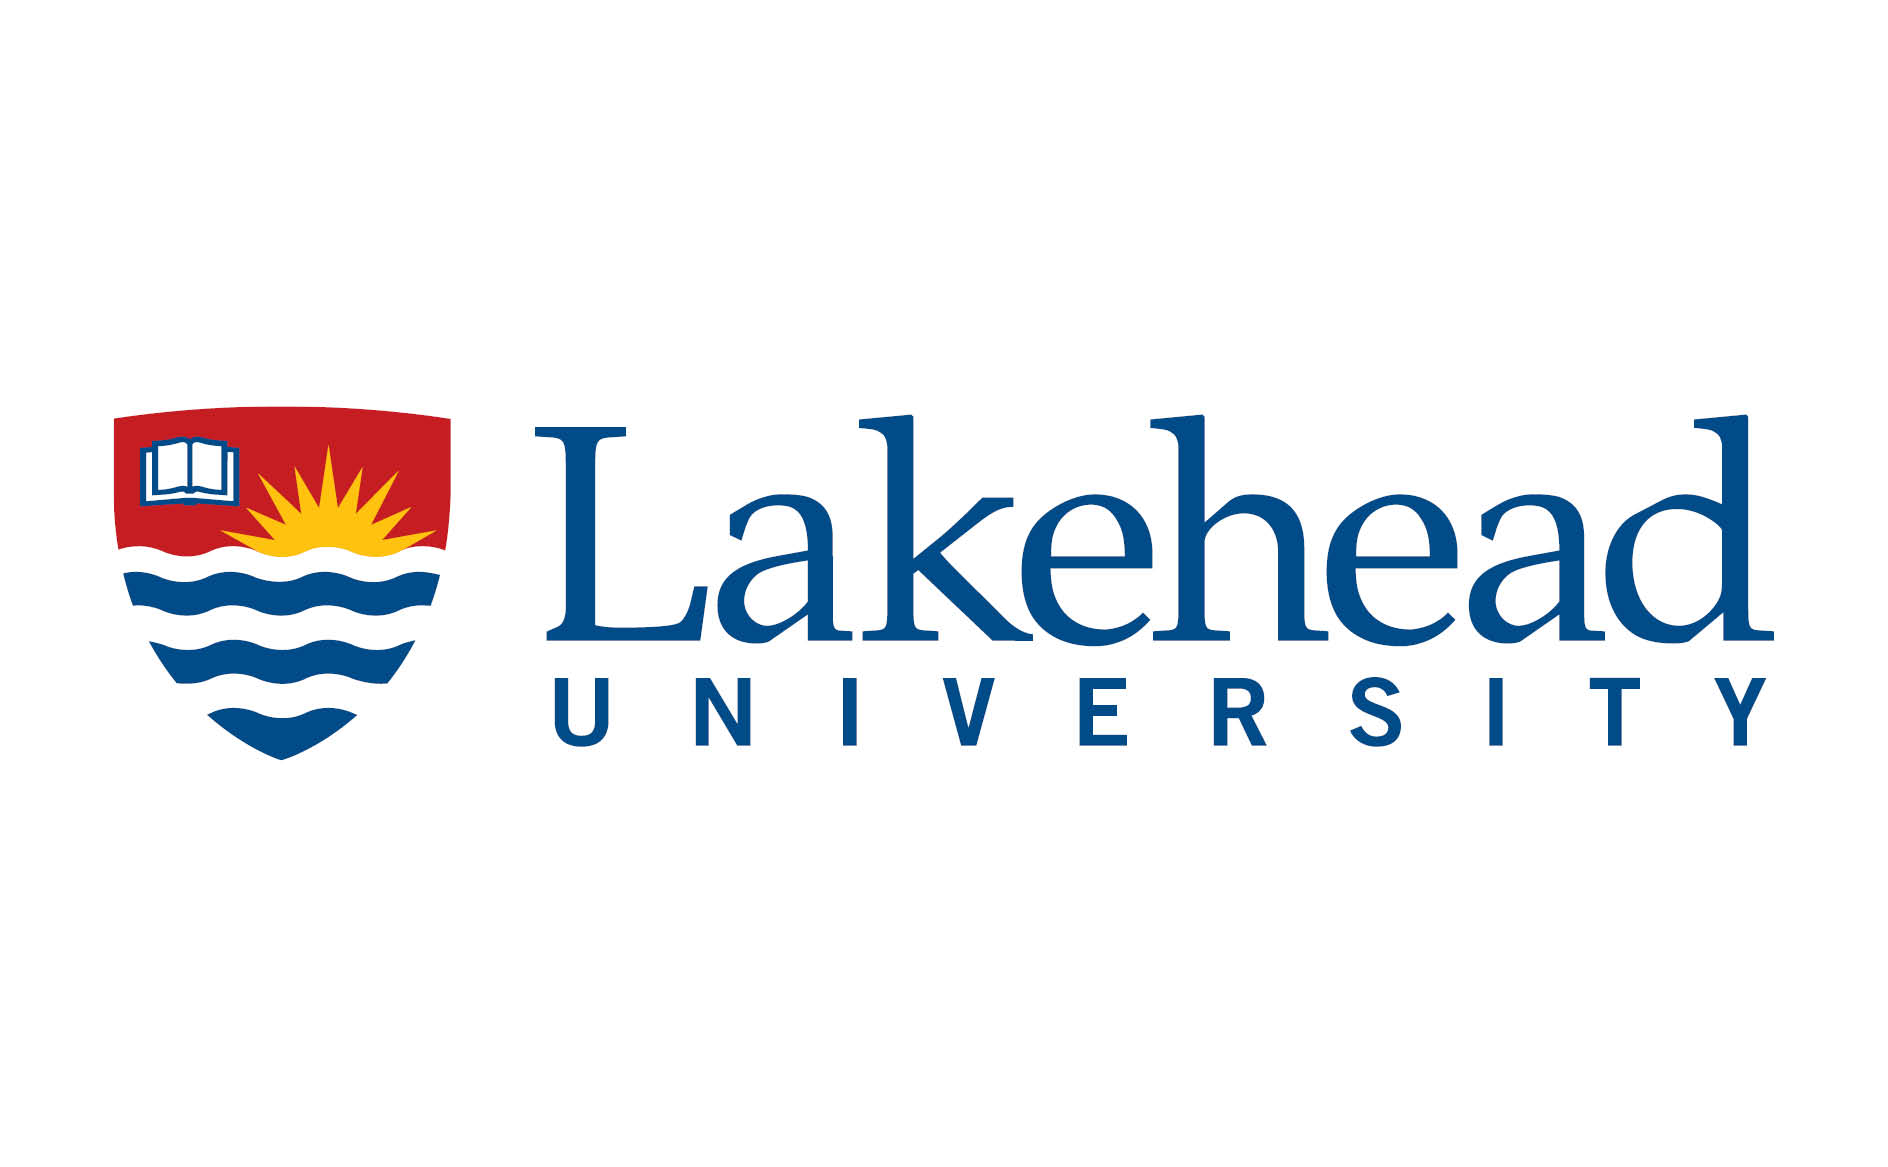 Image of Lakehead University's logo.